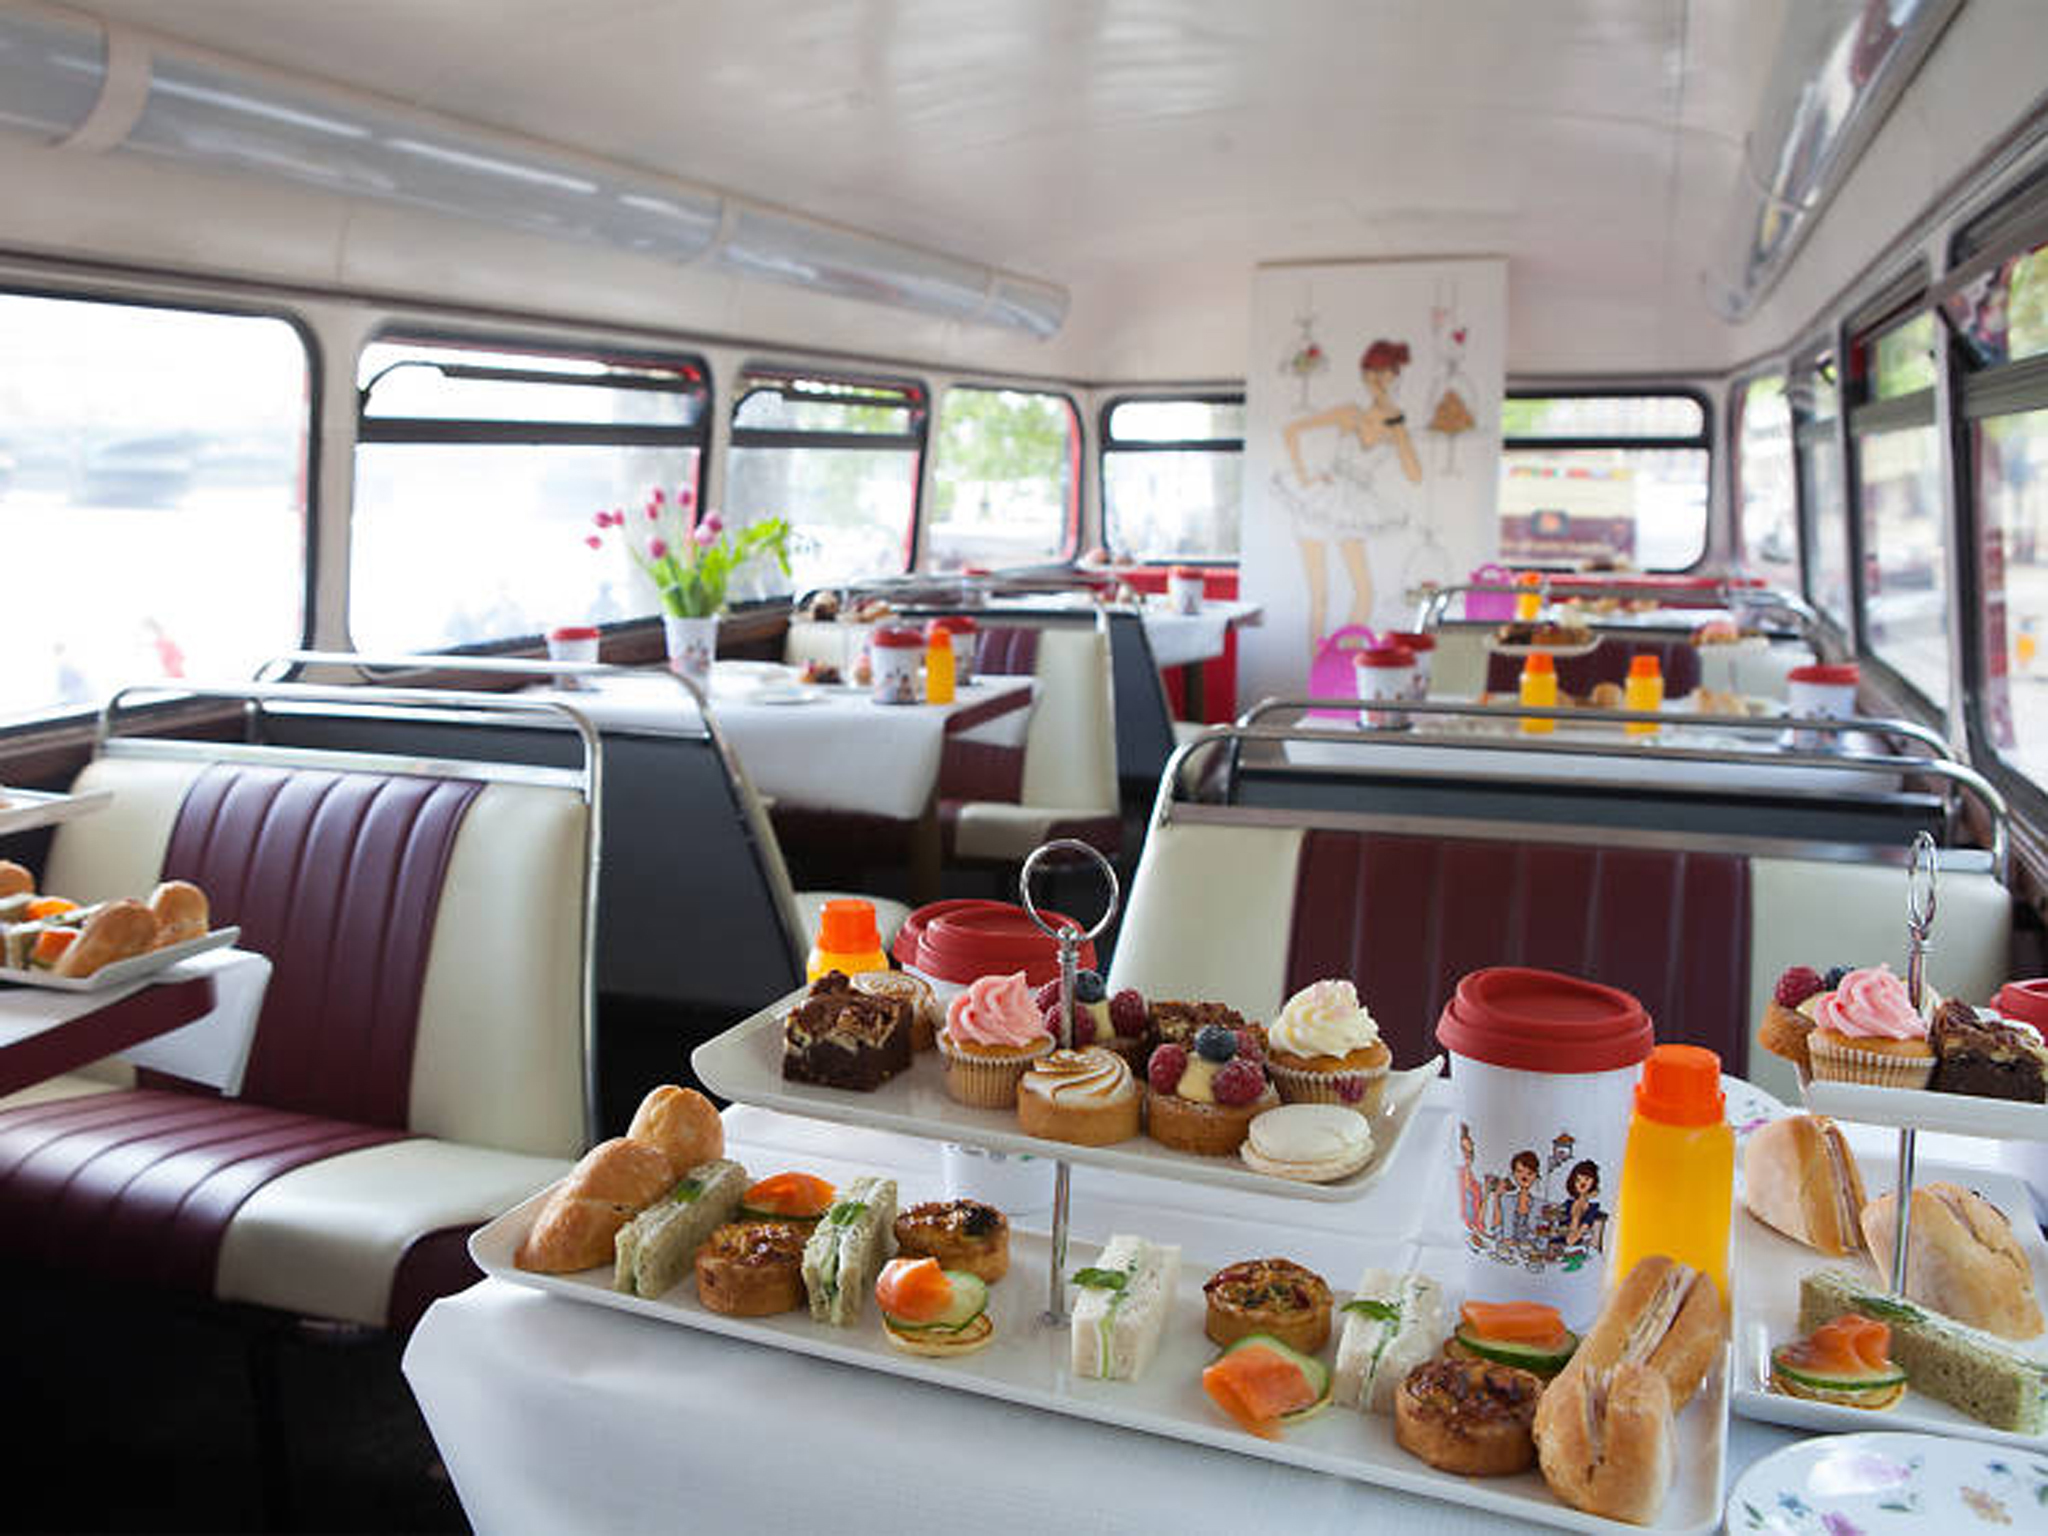 Afternoon tea bus tour at B Bakery